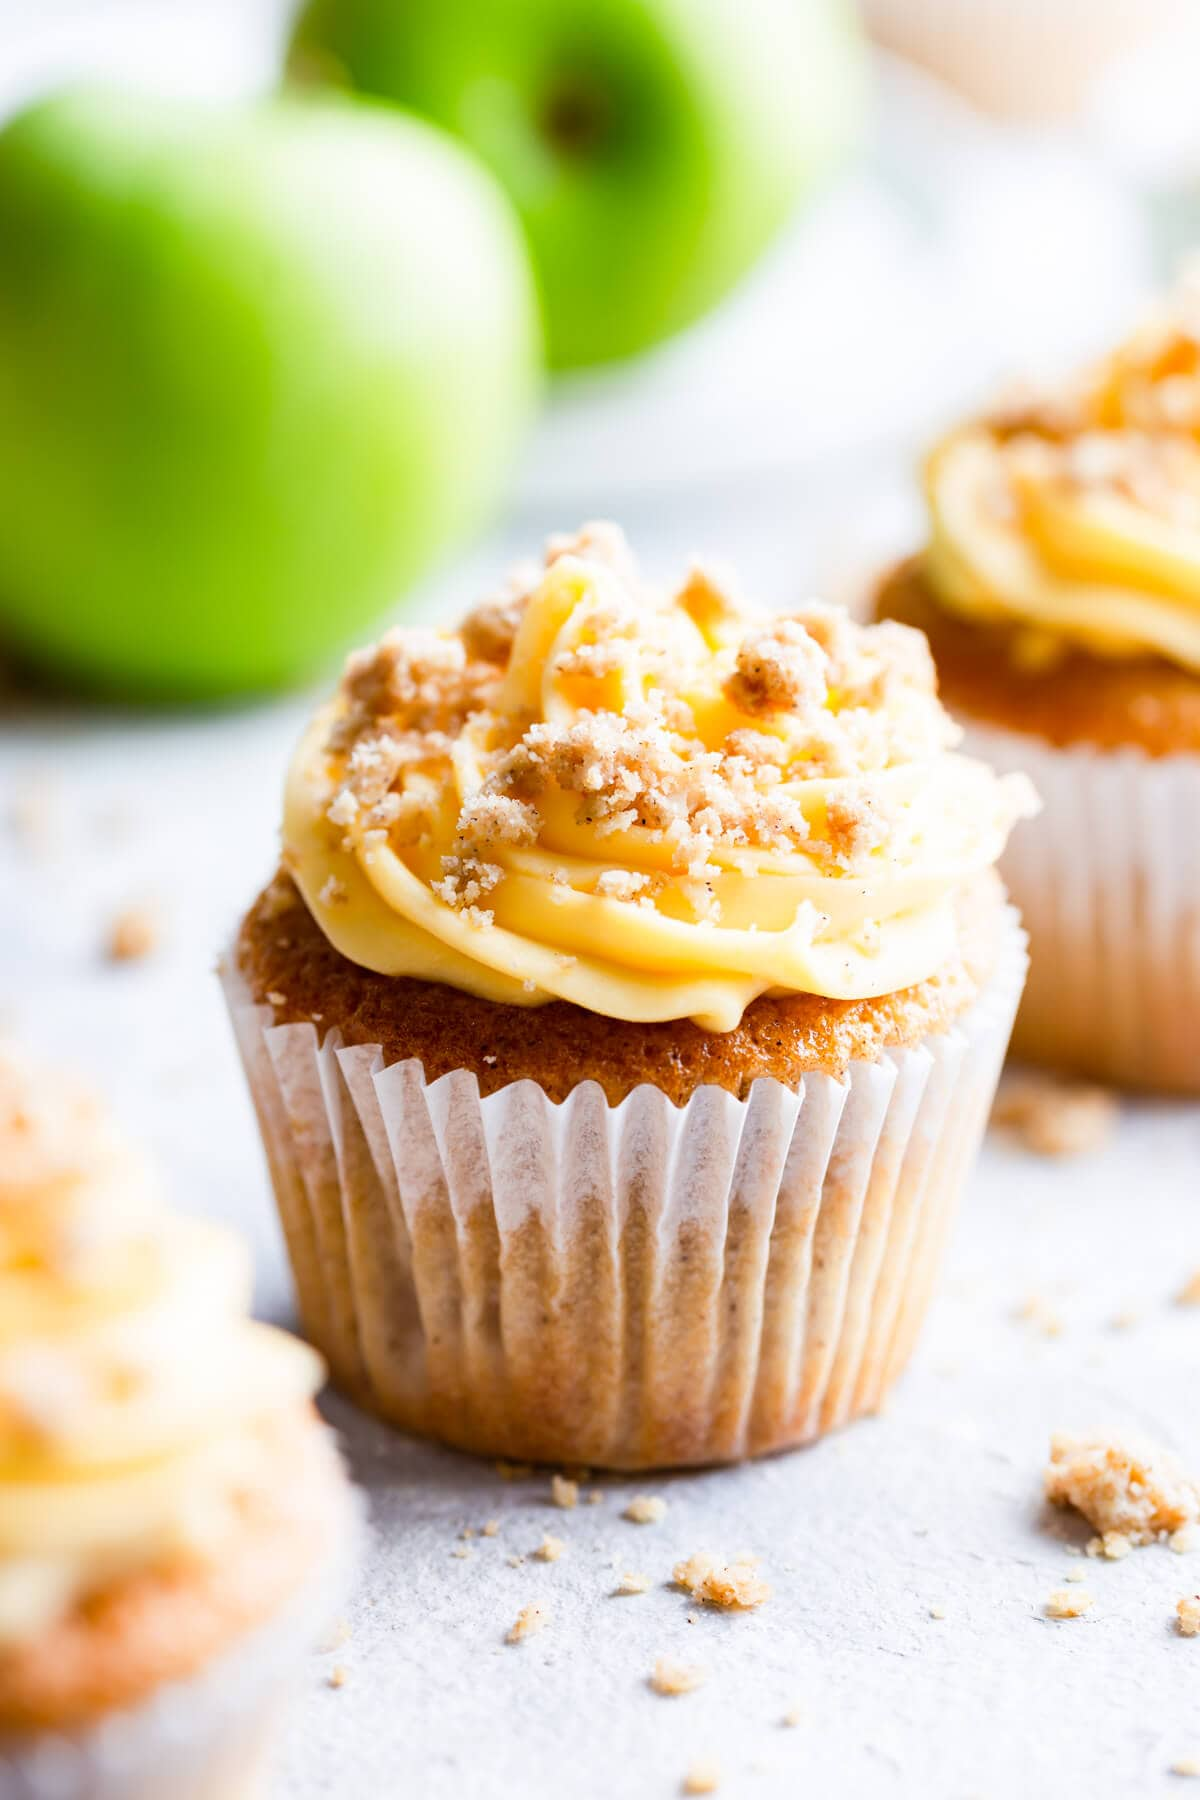 side super close up at an apple crumble cupcake with some green apples in the back